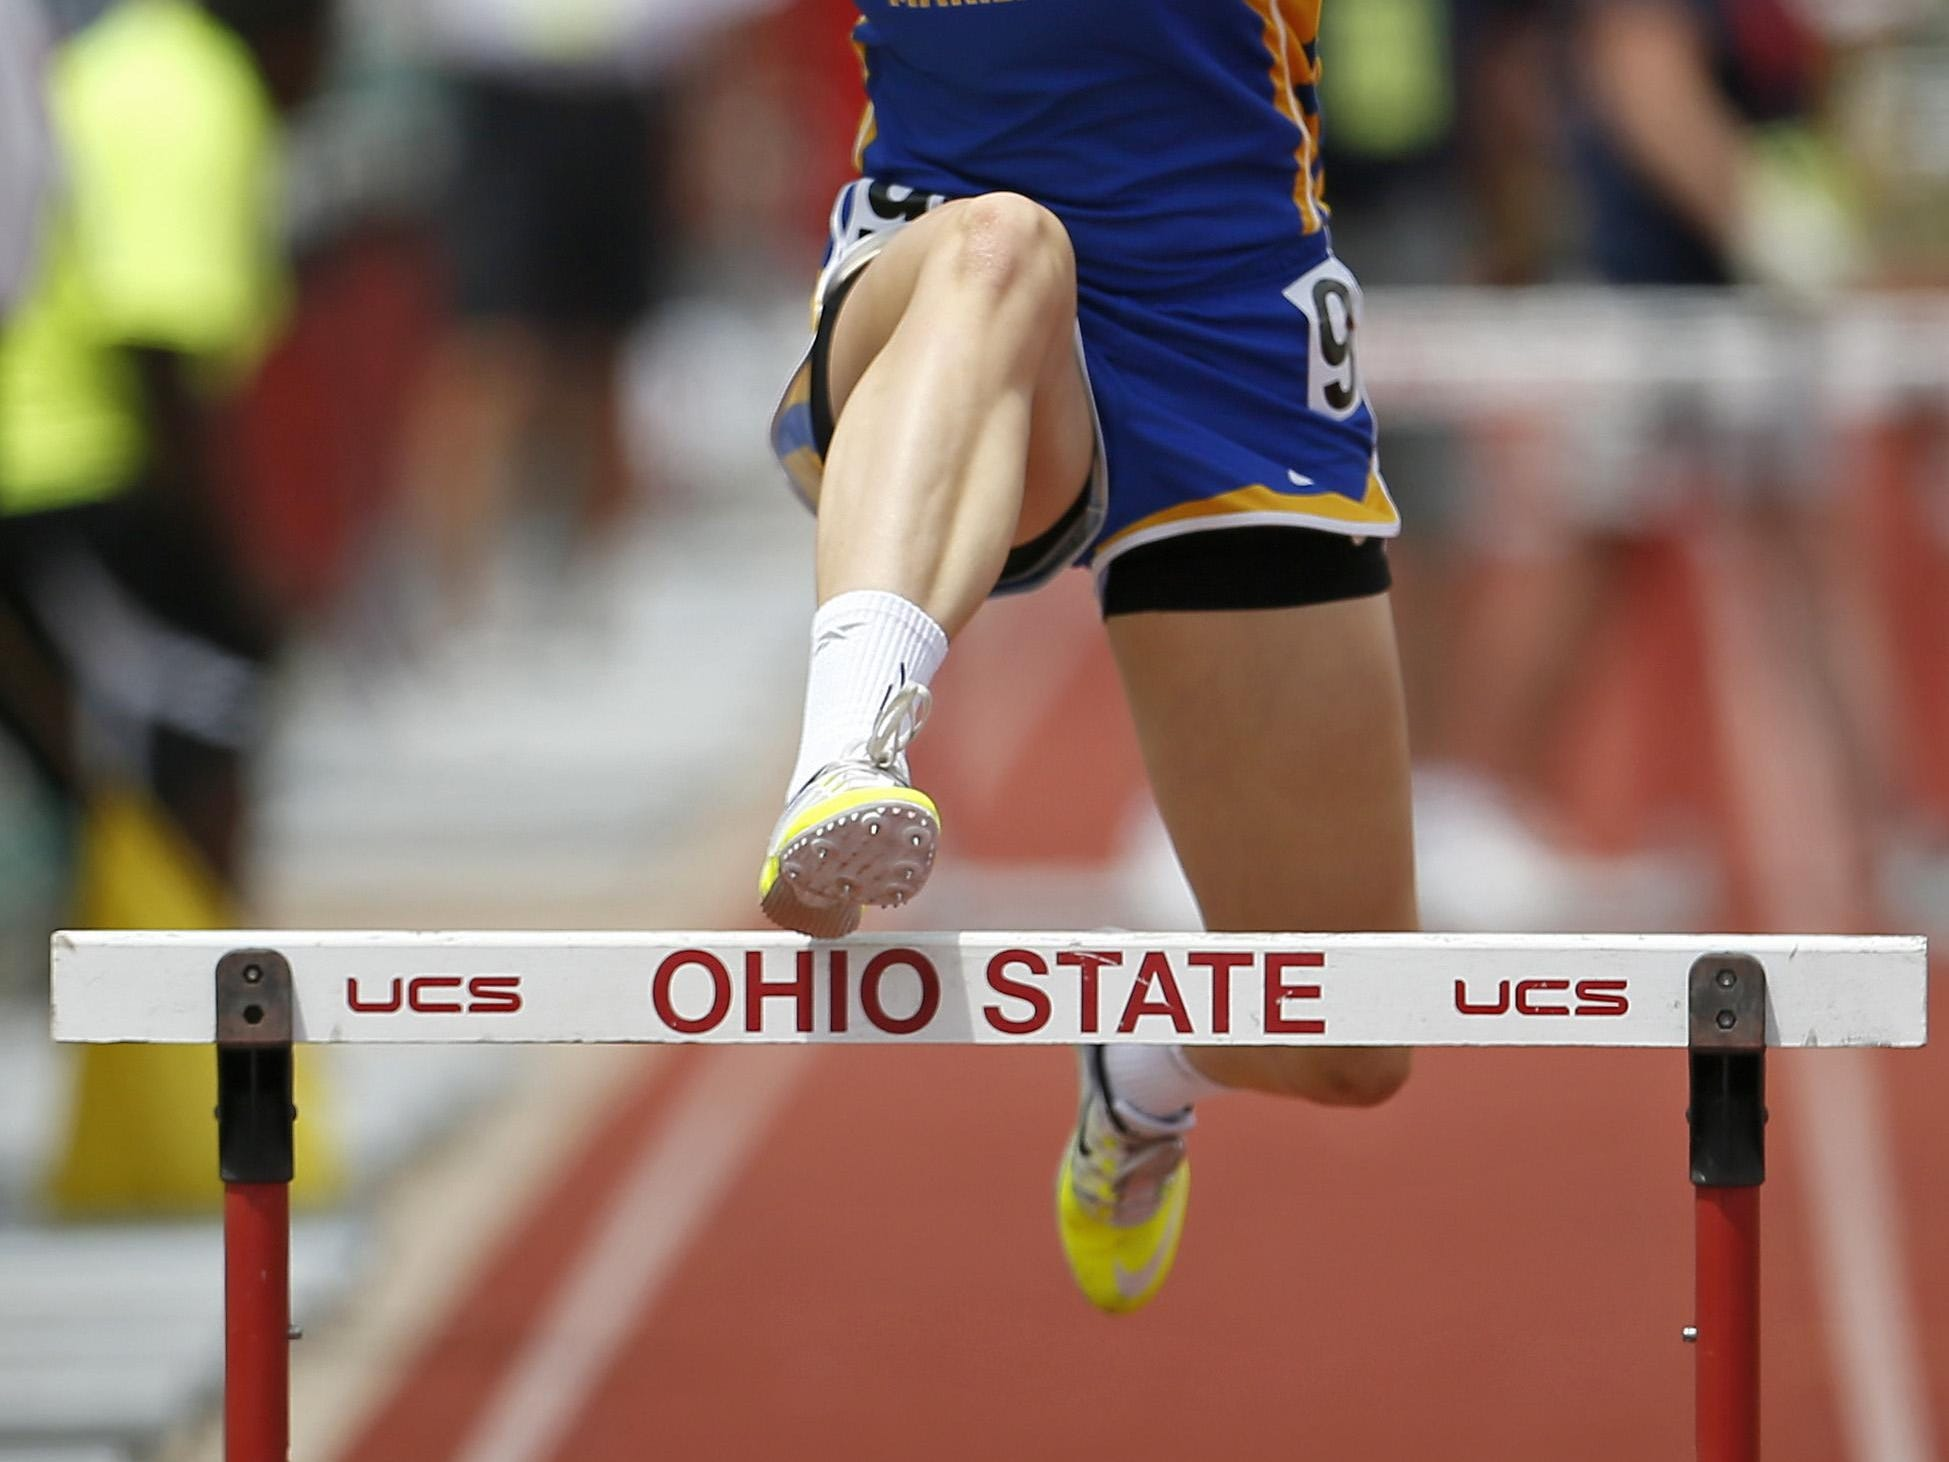 Mariemont's Carson Fields crosses the final hurdle in the 300-meter hurdles event at the OHSAA Division II state finals. Fields finished seventh with a time of 45.87 seconds.